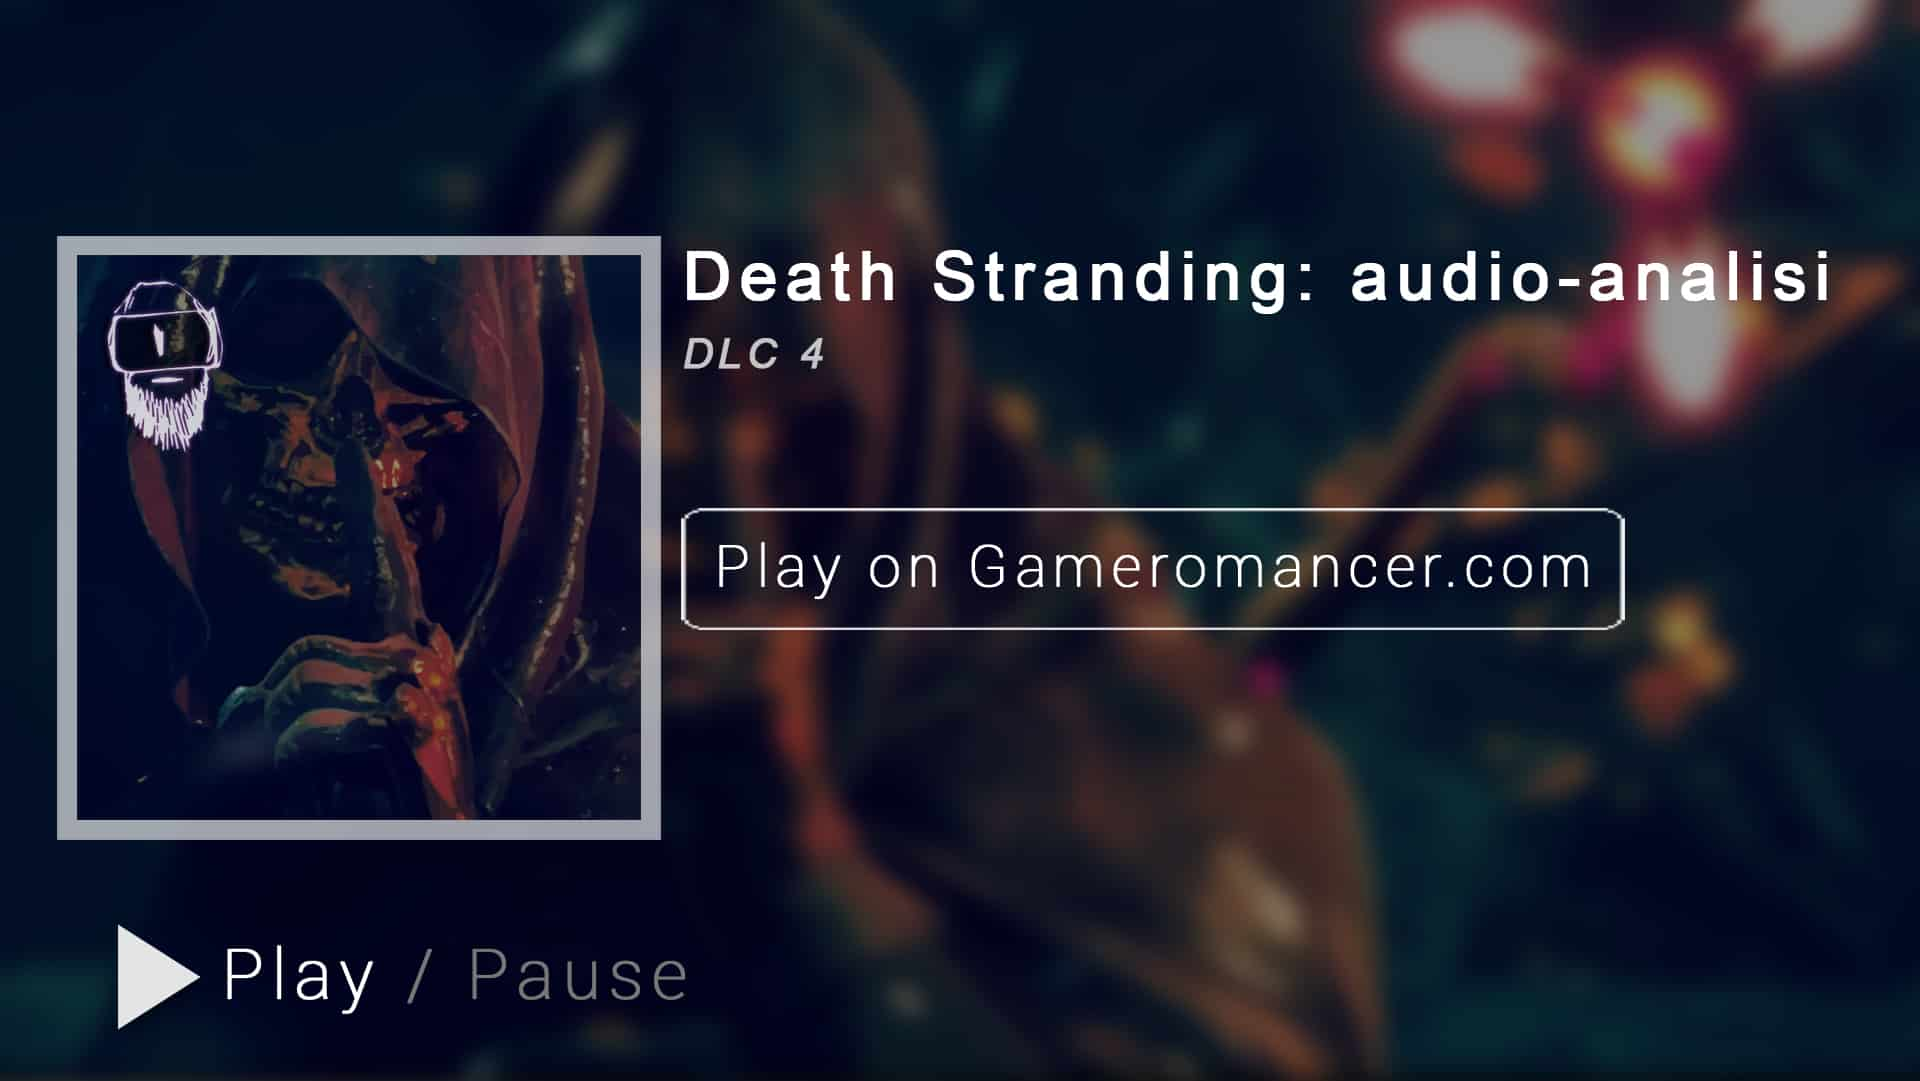 DLC #4: Death Stranding: audio analisi del trailer